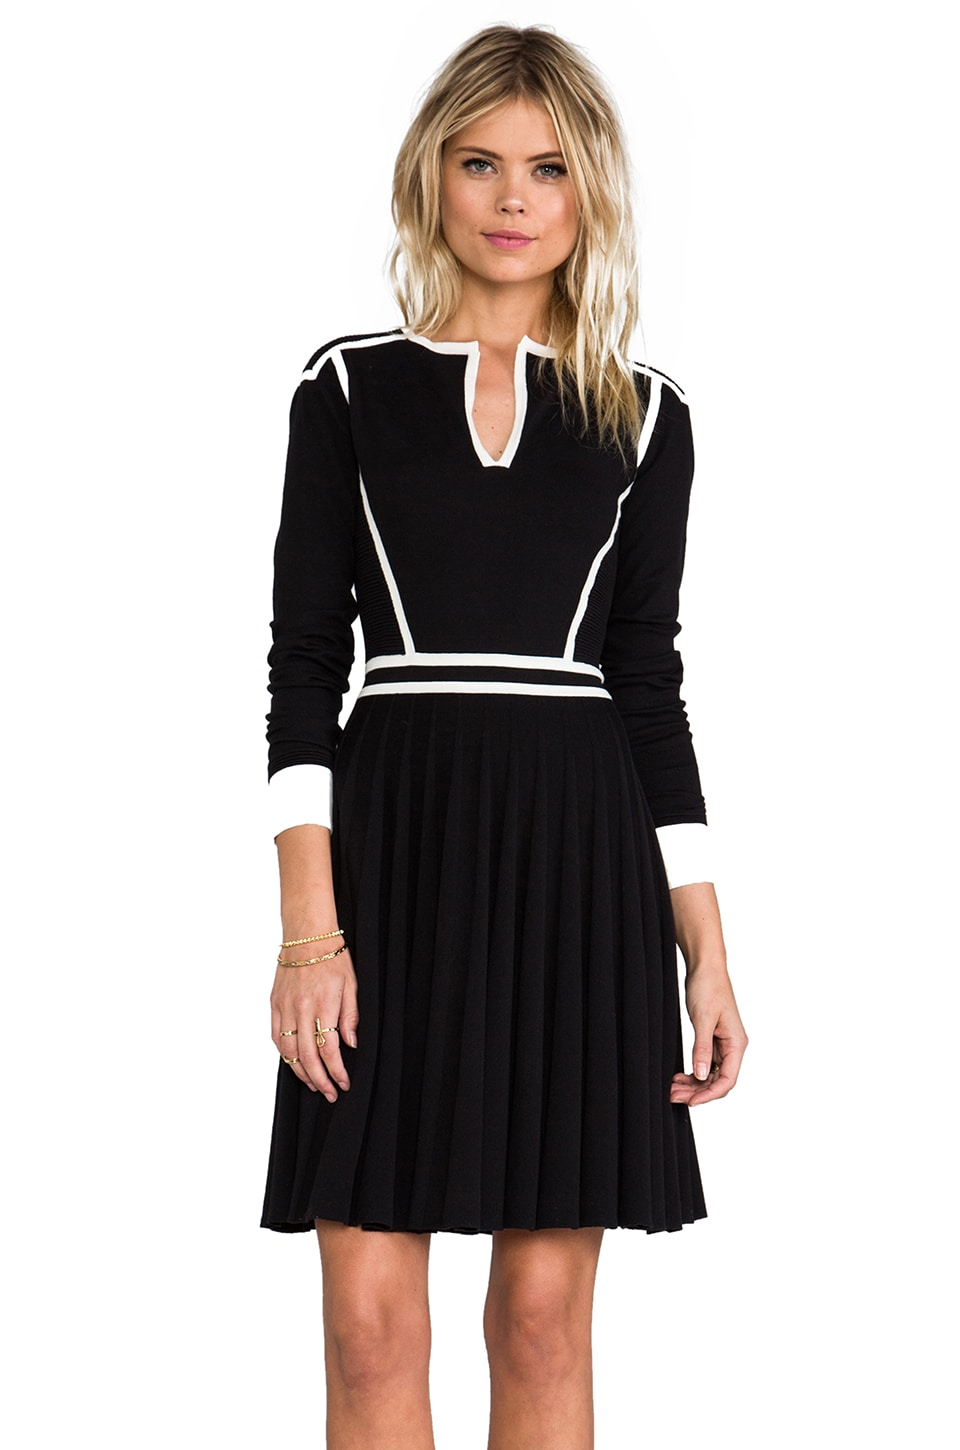 Marc by Marc Jacobs Alexis Sweater Dress in Black Multi